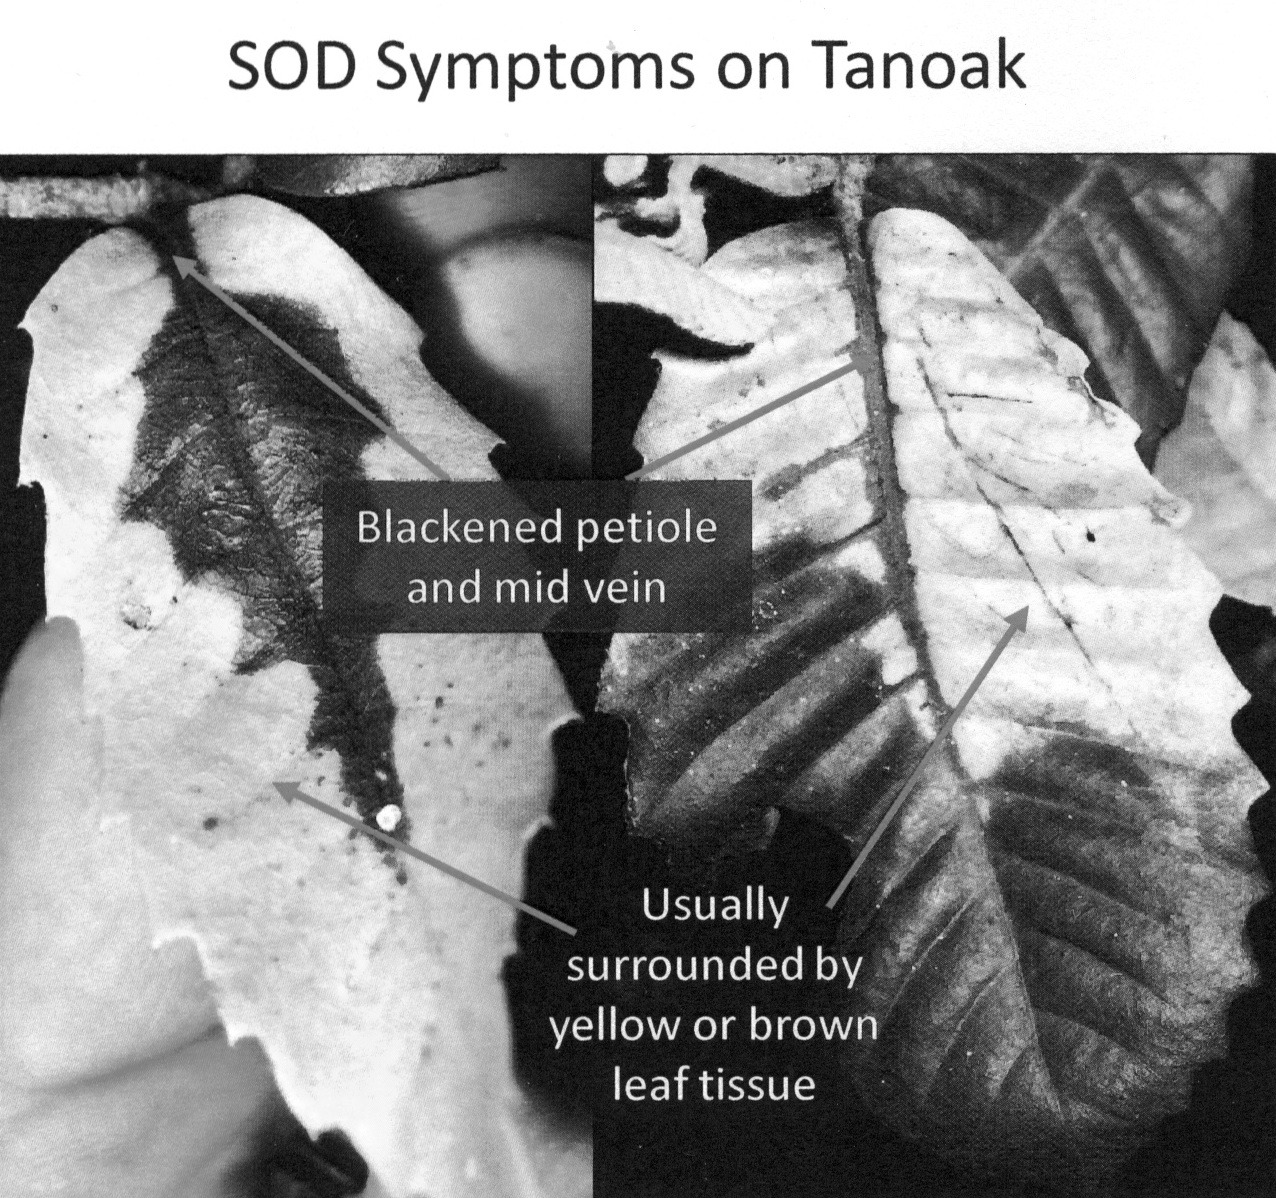 SOD symptoms on Tanoak